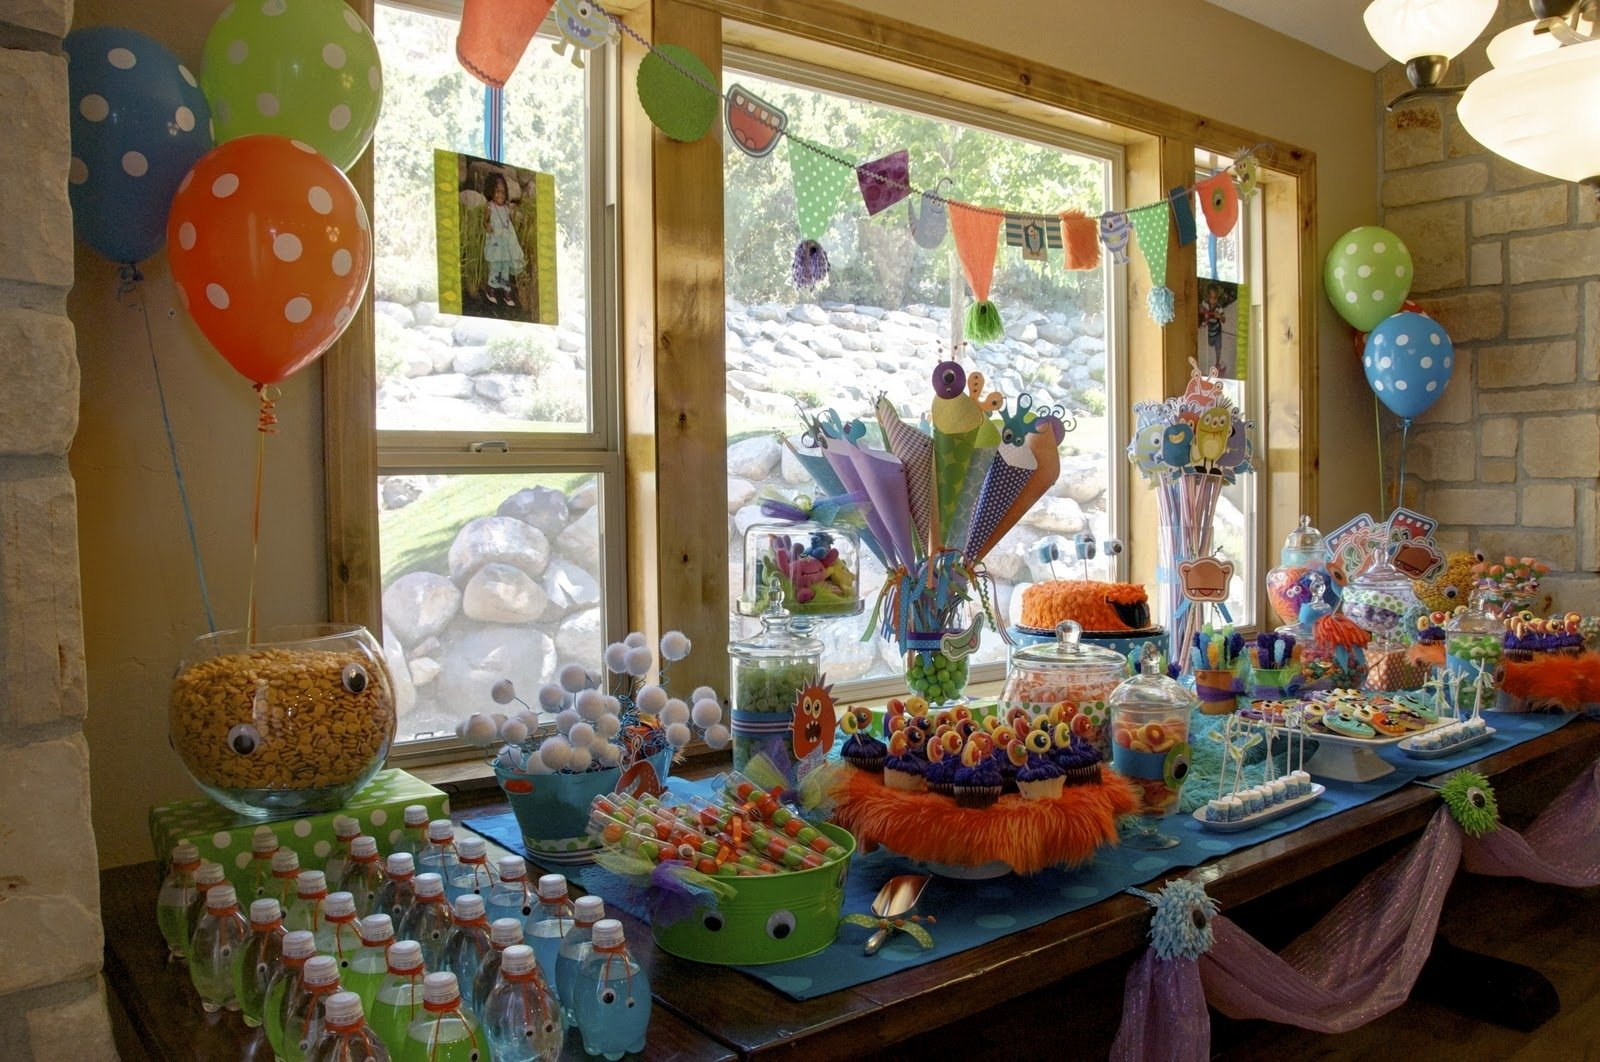 10 Great 2 Year Old Boy Birthday Party Ideas my friends birthday is in the winter and she wanteaes cause shes 8